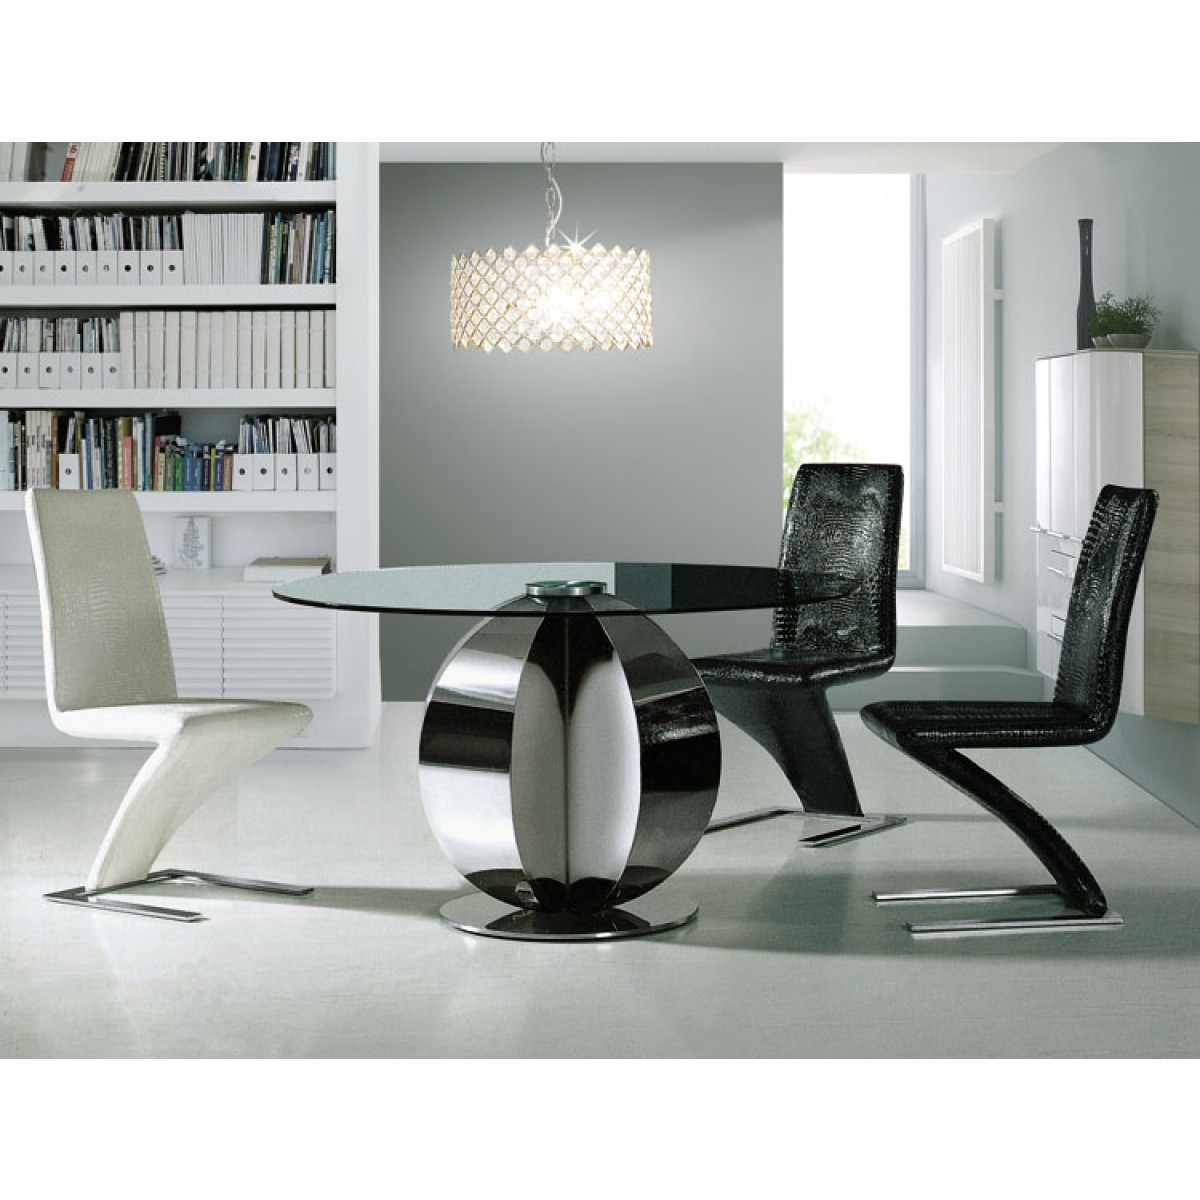 Superbe table design giro pop for Table a salle a manger design